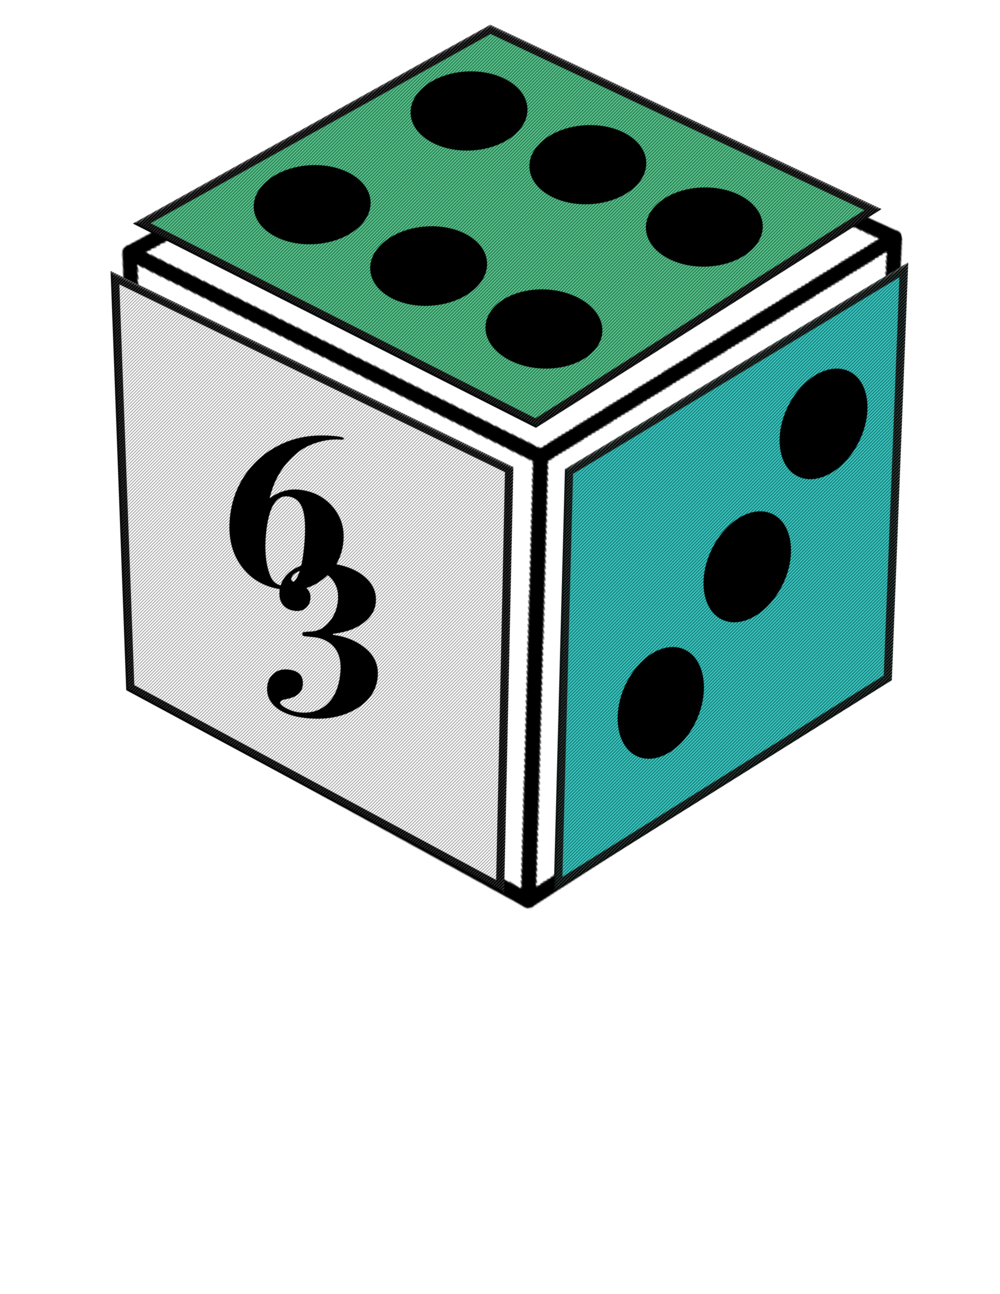 J448 Campaigns Logo - Our team is composed of 6 members, with 3 main core values. My role as the designer was to create a dice that represents our agency, Sixty-Three.